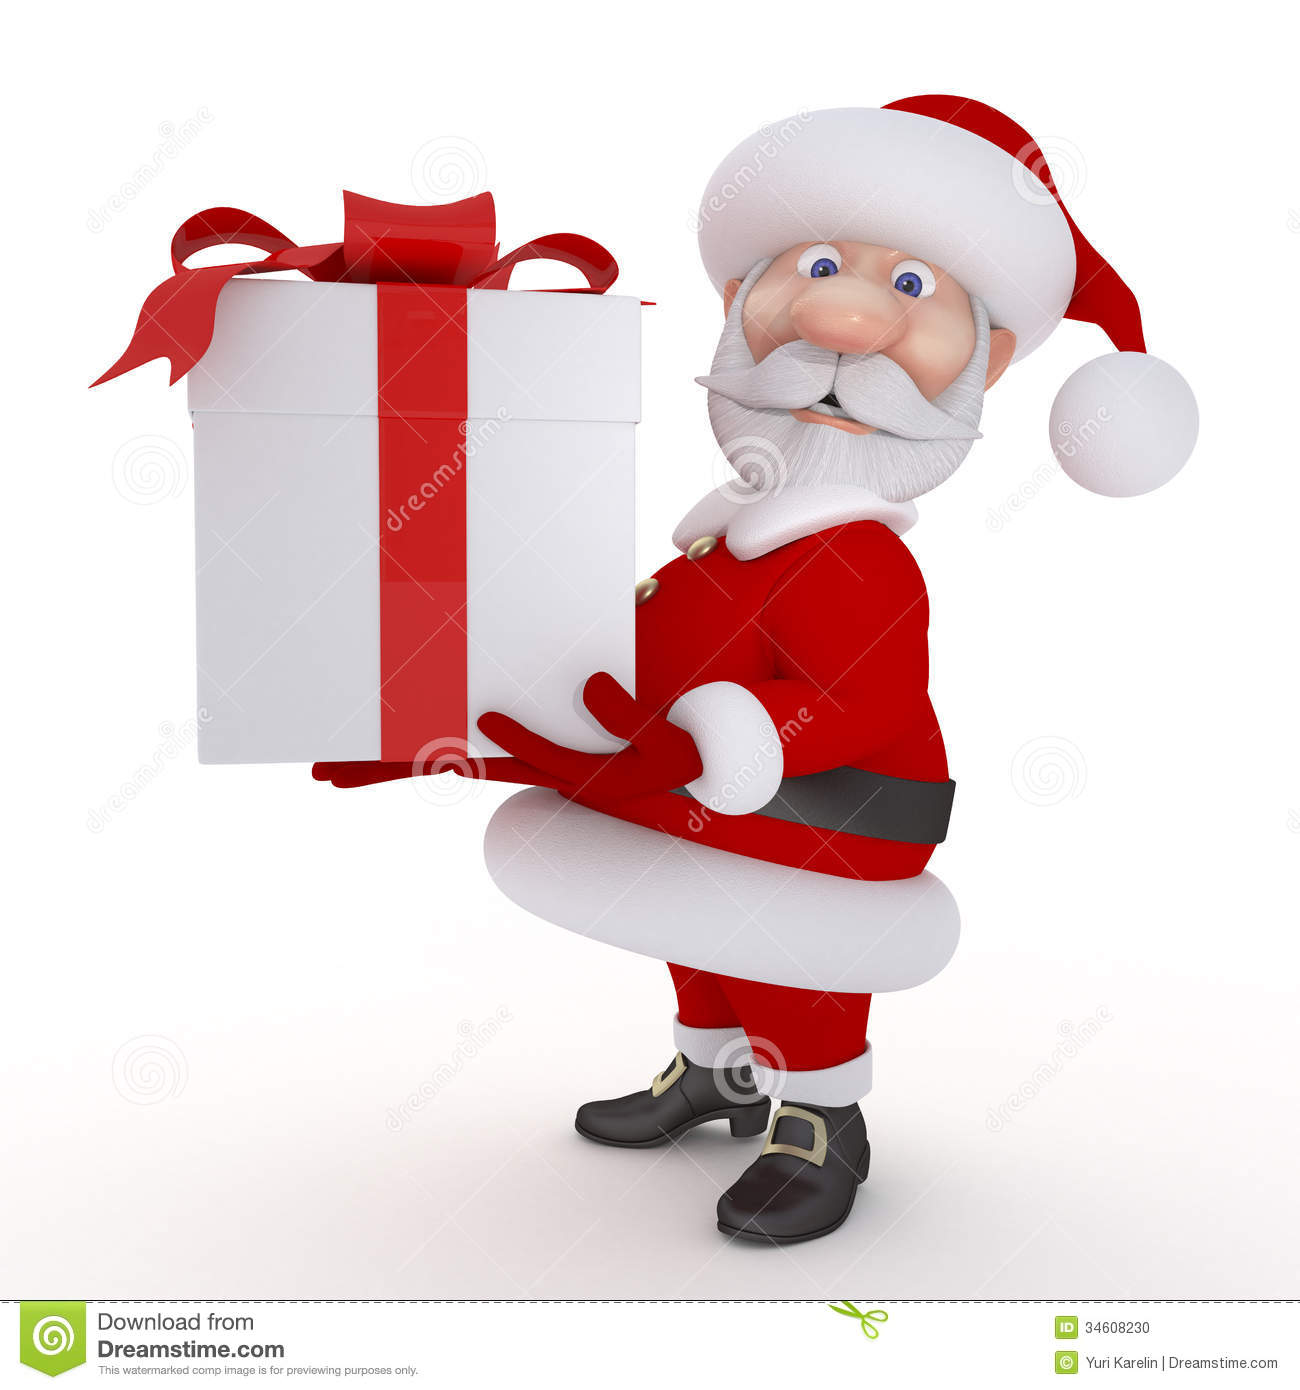 Christmas Holiday Images Christmas holiday. stock photo